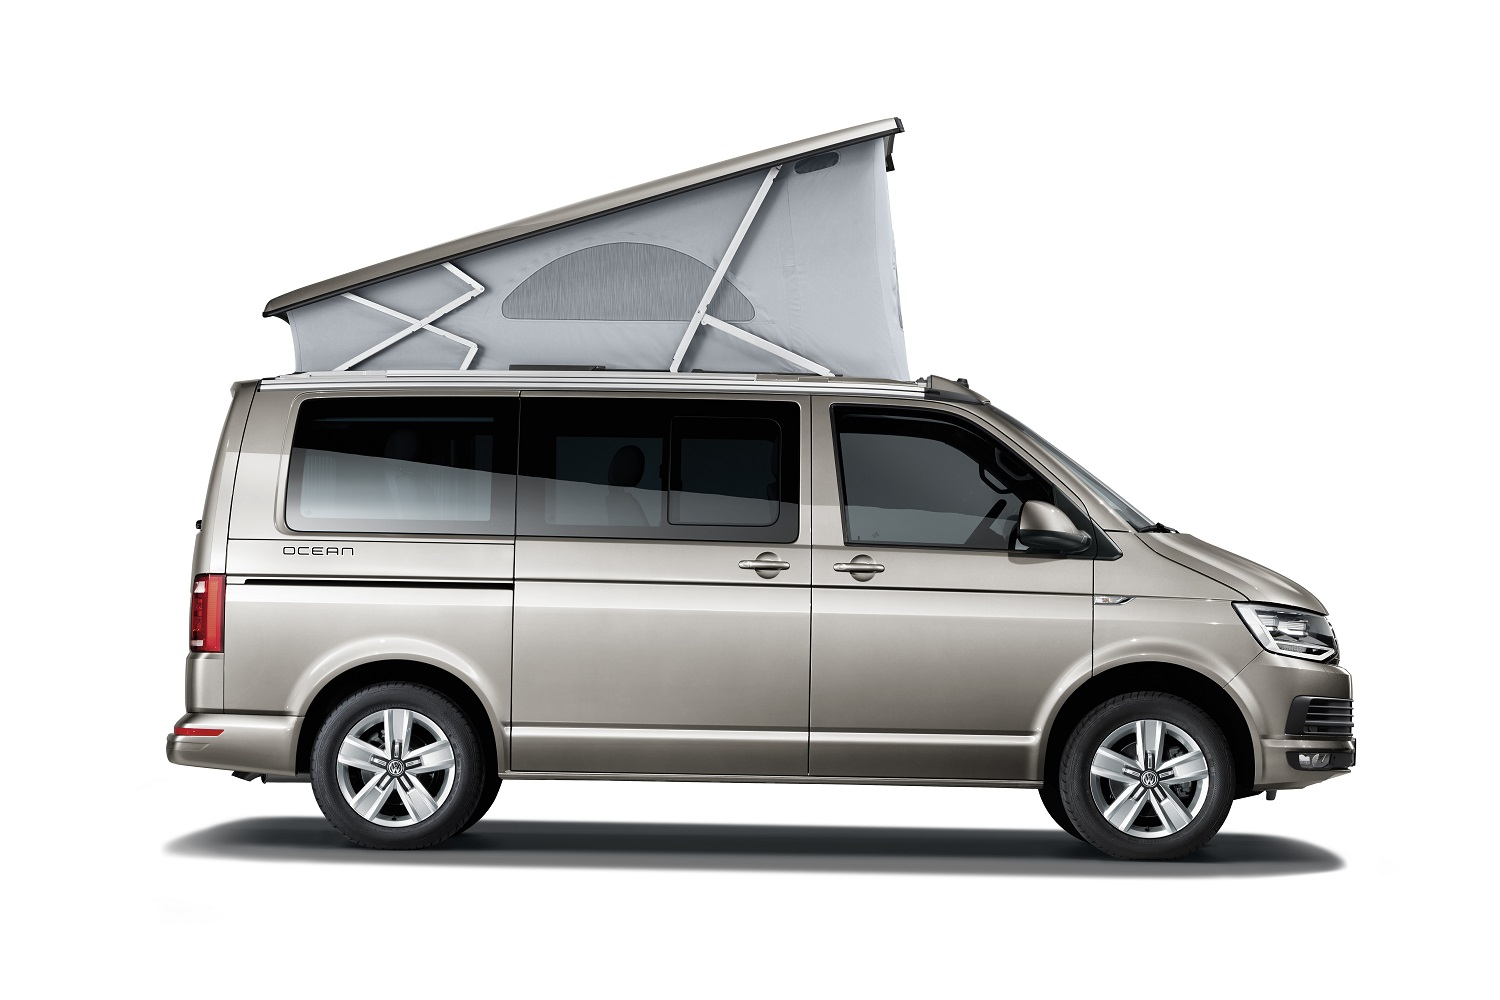 Pure Motorhomes Germany Urban Vehicle Pössl Campster und Crosscamp or similar